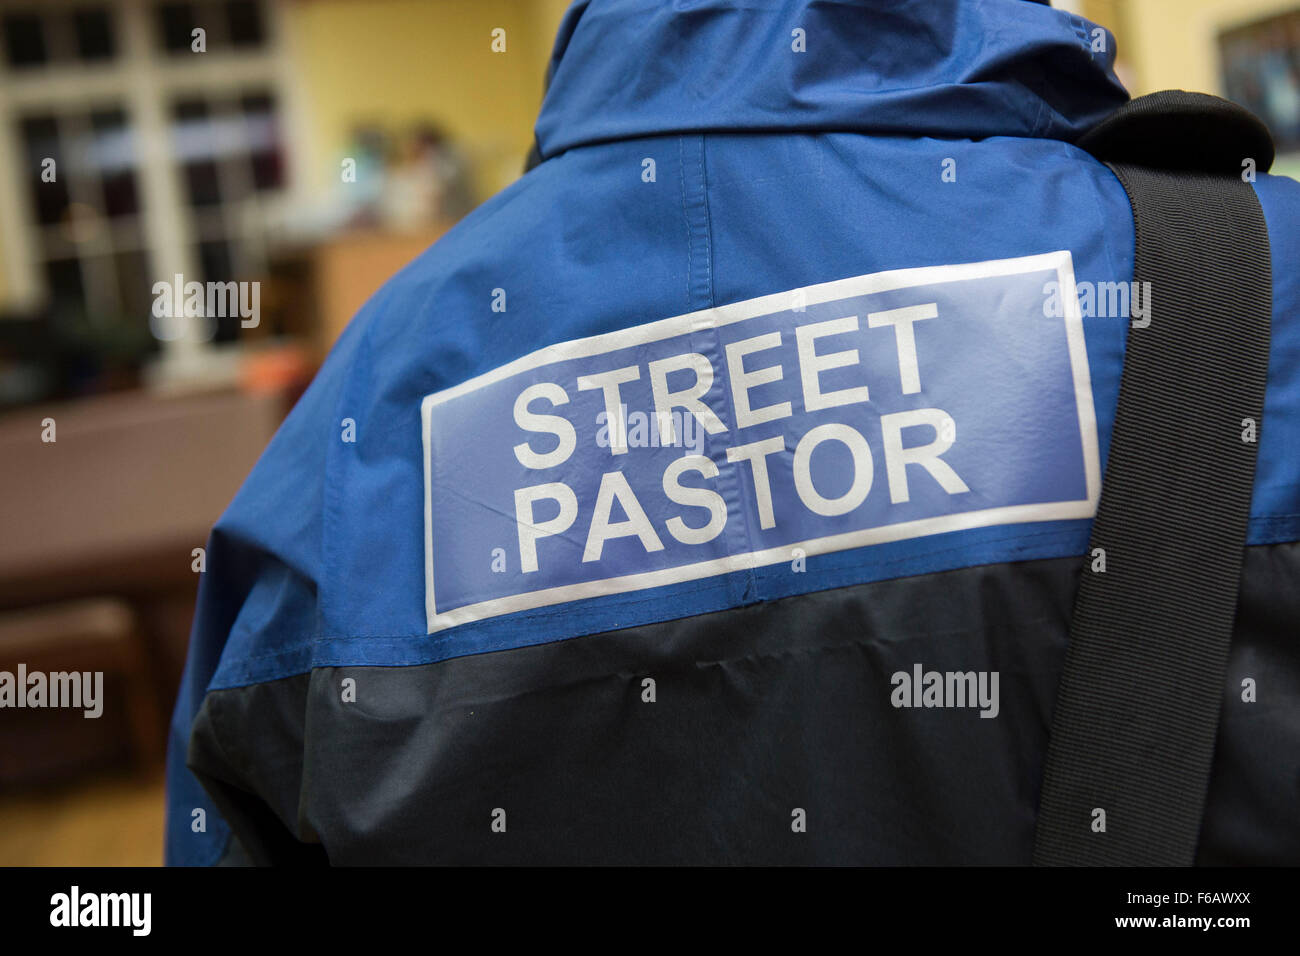 A street pastor at work in Cardiff, South Wales. - Stock Image